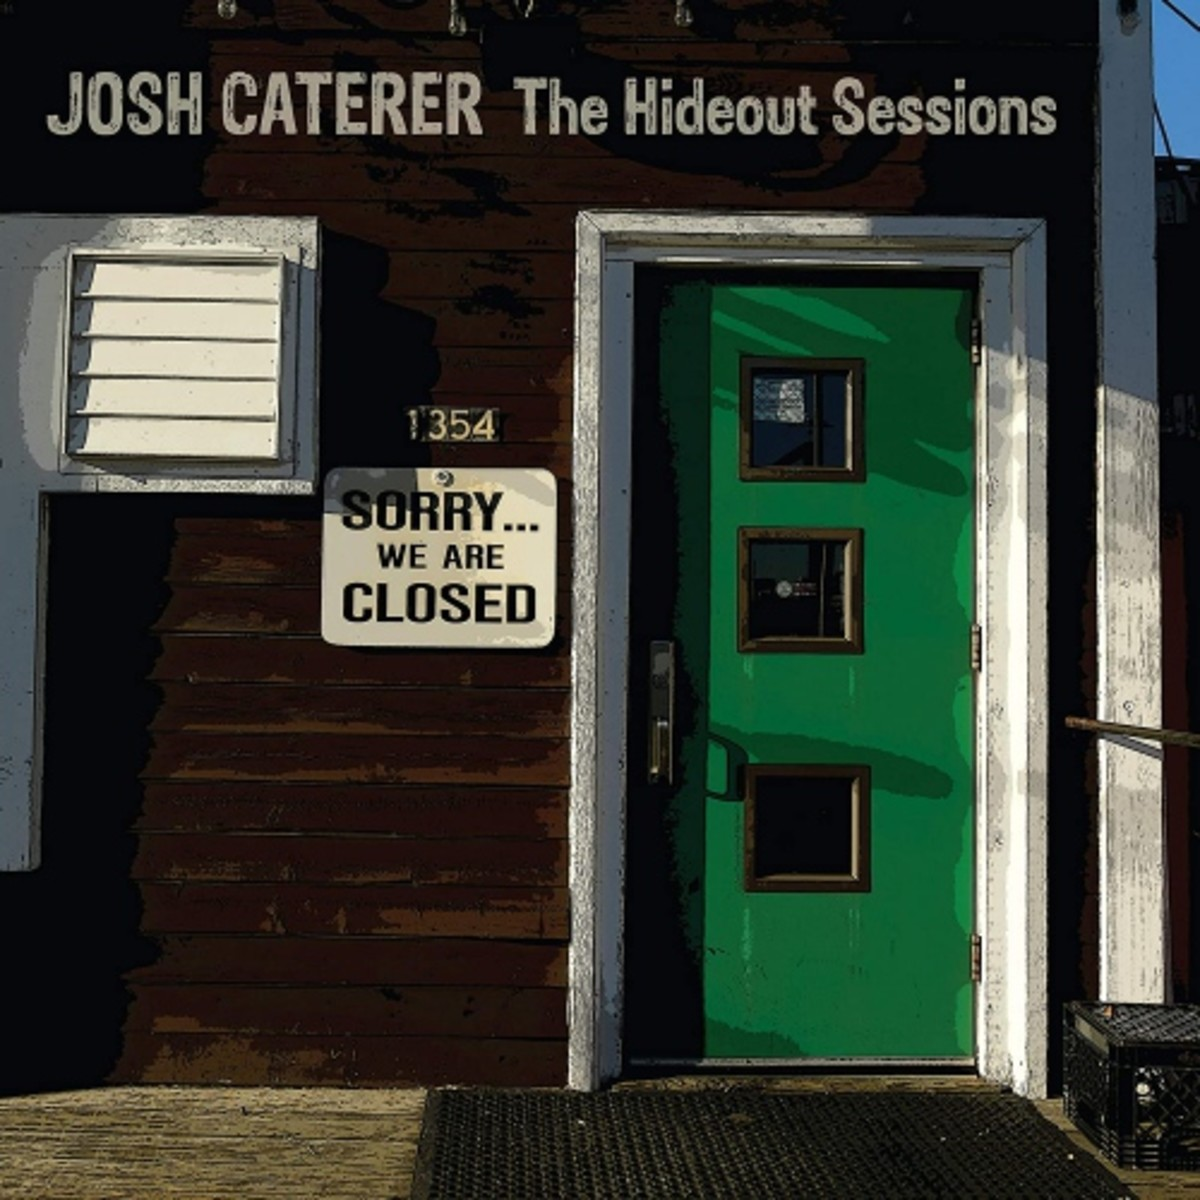 josh-caterer-the-hideout-sessions